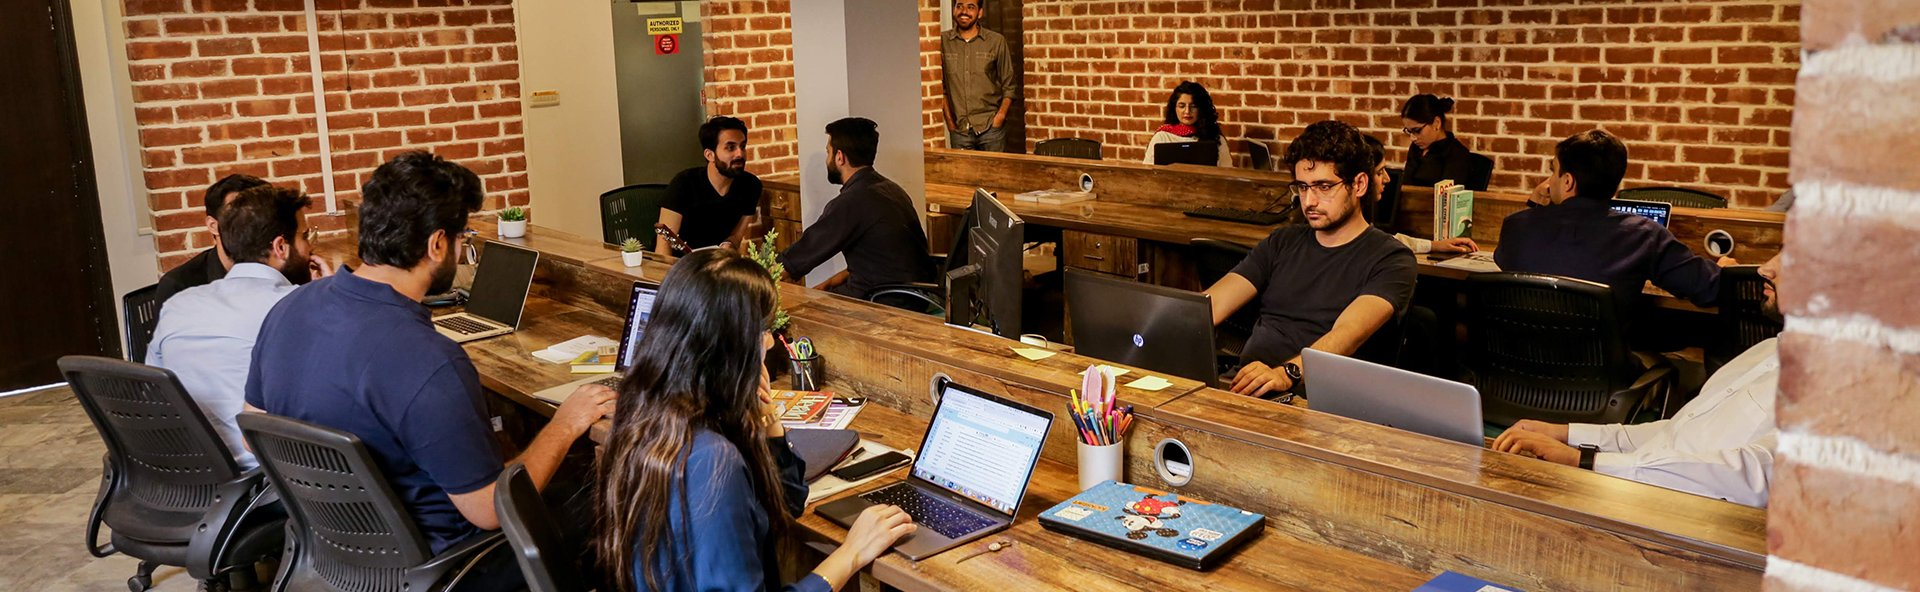 A Coworking Space in Gulberg Lahore: Kickstart Gulberg 58-A2